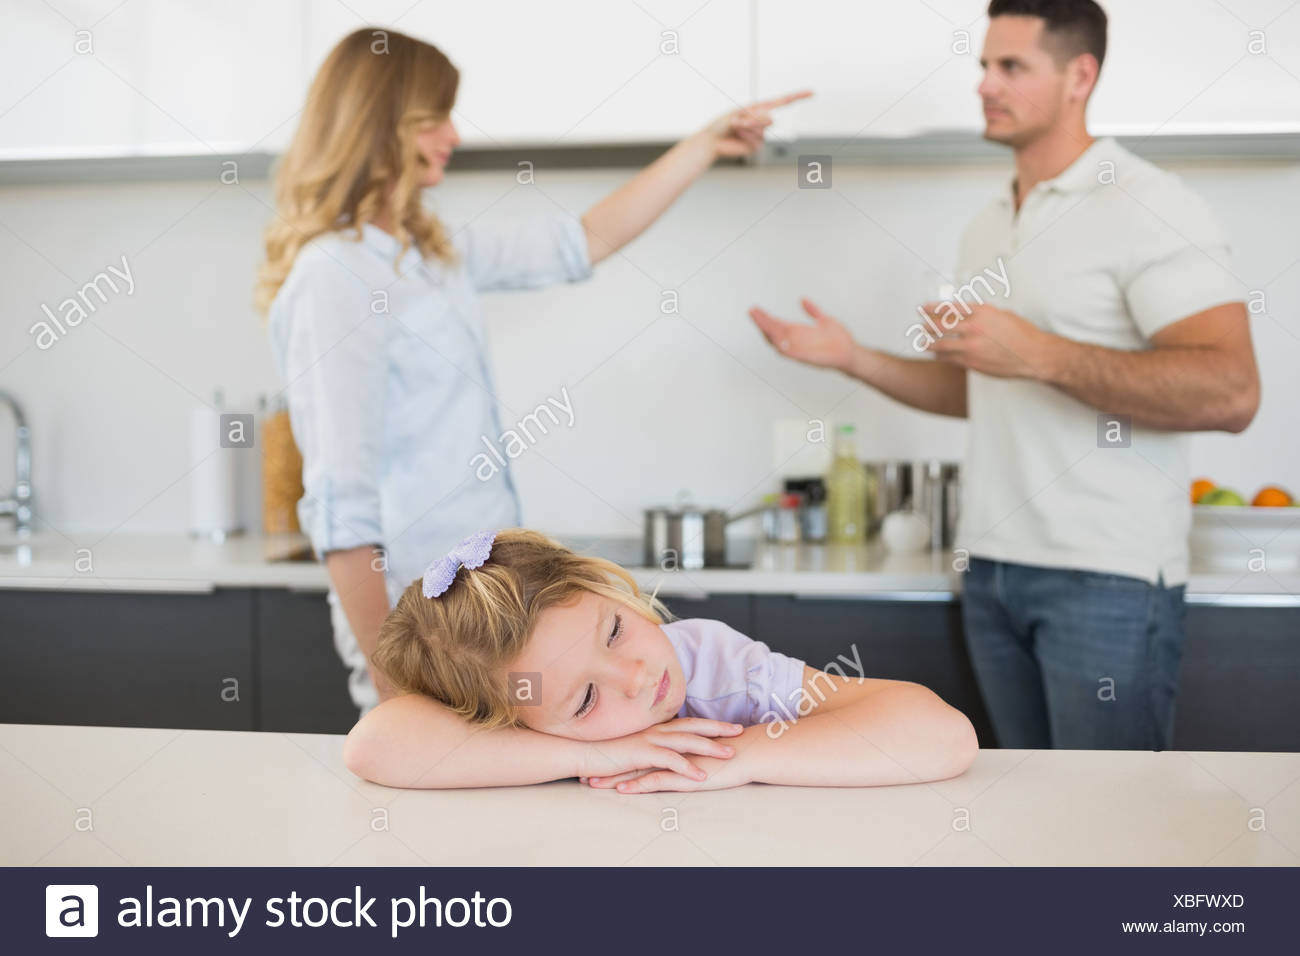 Girl at table with parents arguing in background - Stock Image